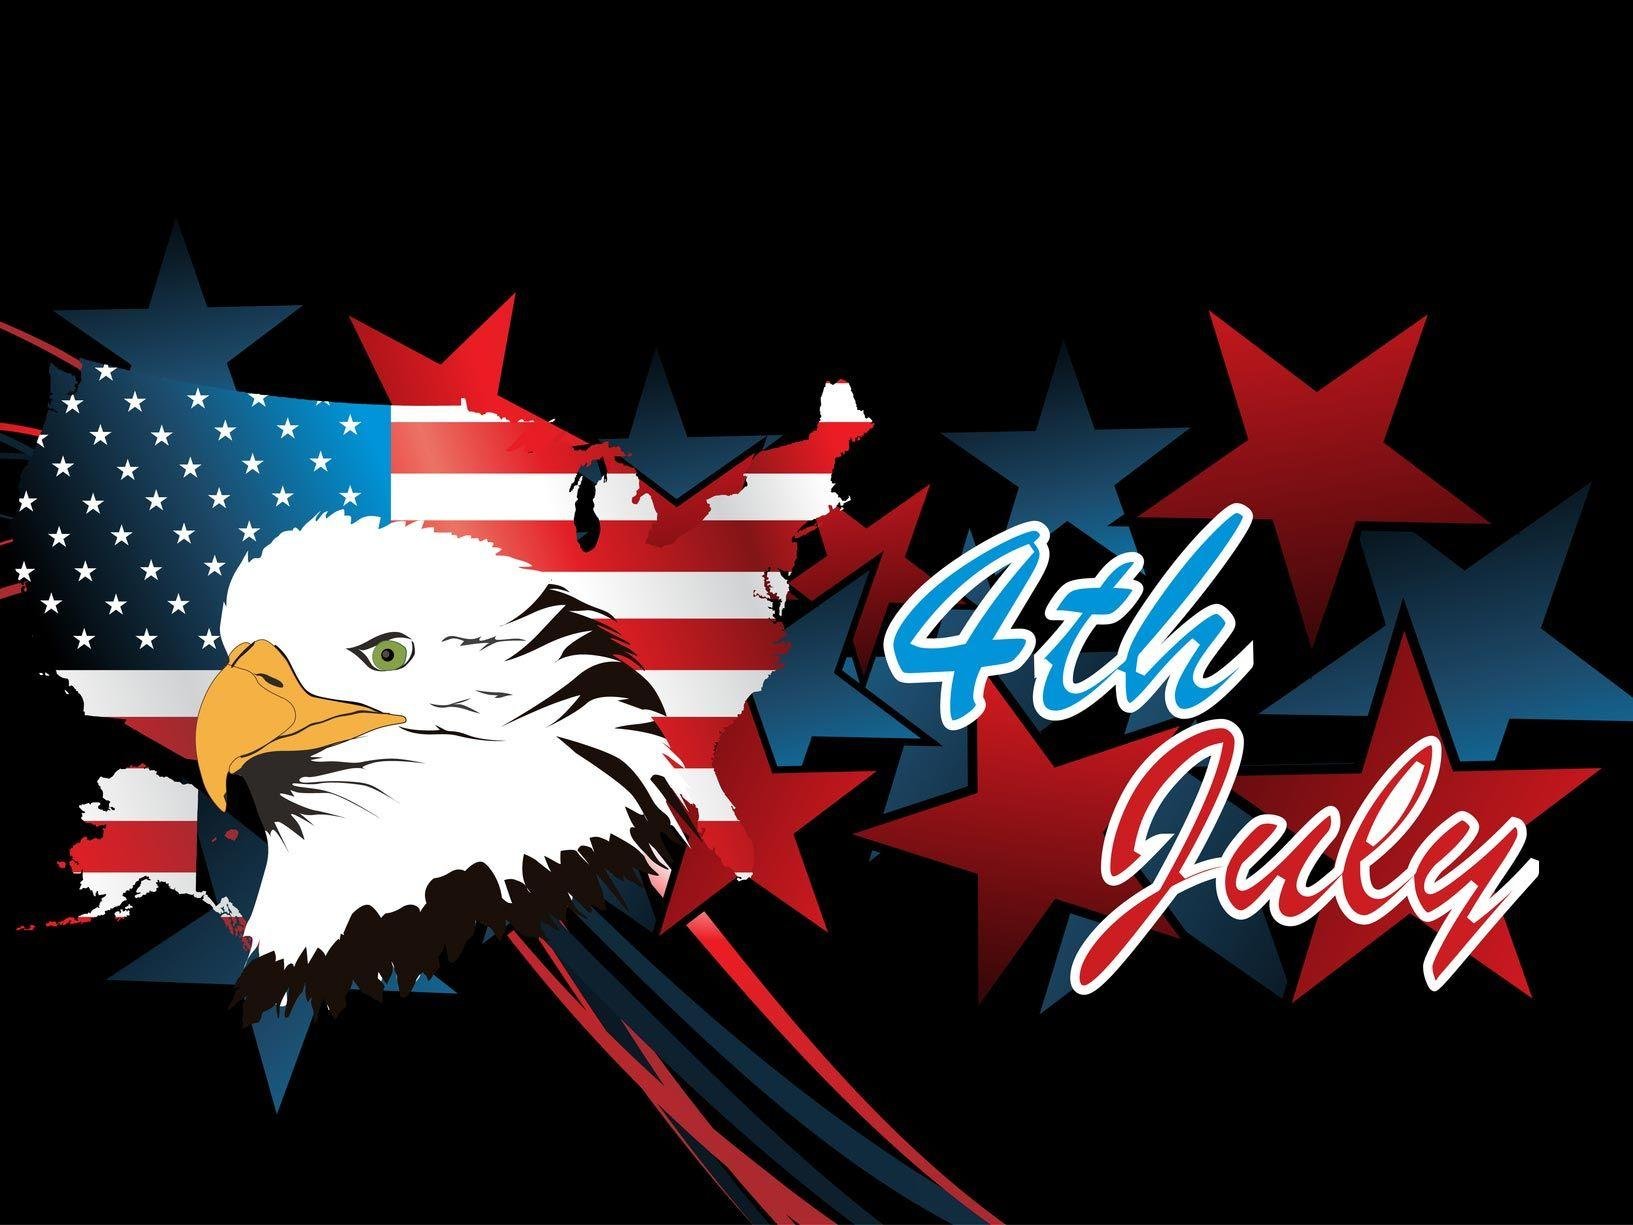 4th July Independence Day 2013 Free Vector Downloads, Stock Graphics